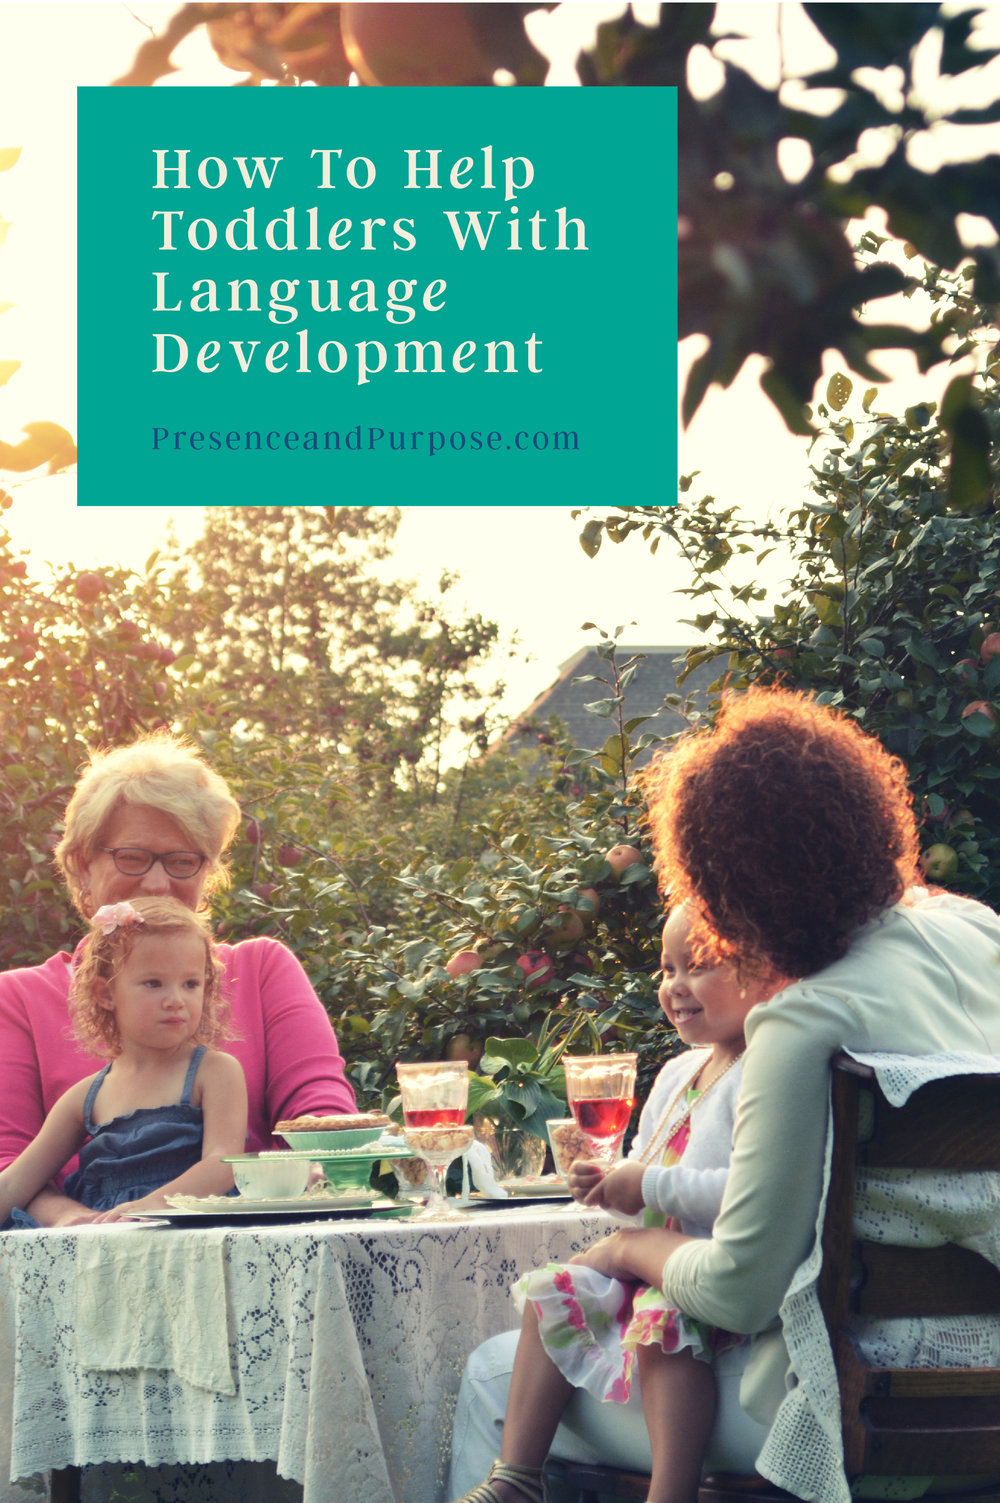 19_0225_How To Help Toddlers With Language Development.jpg